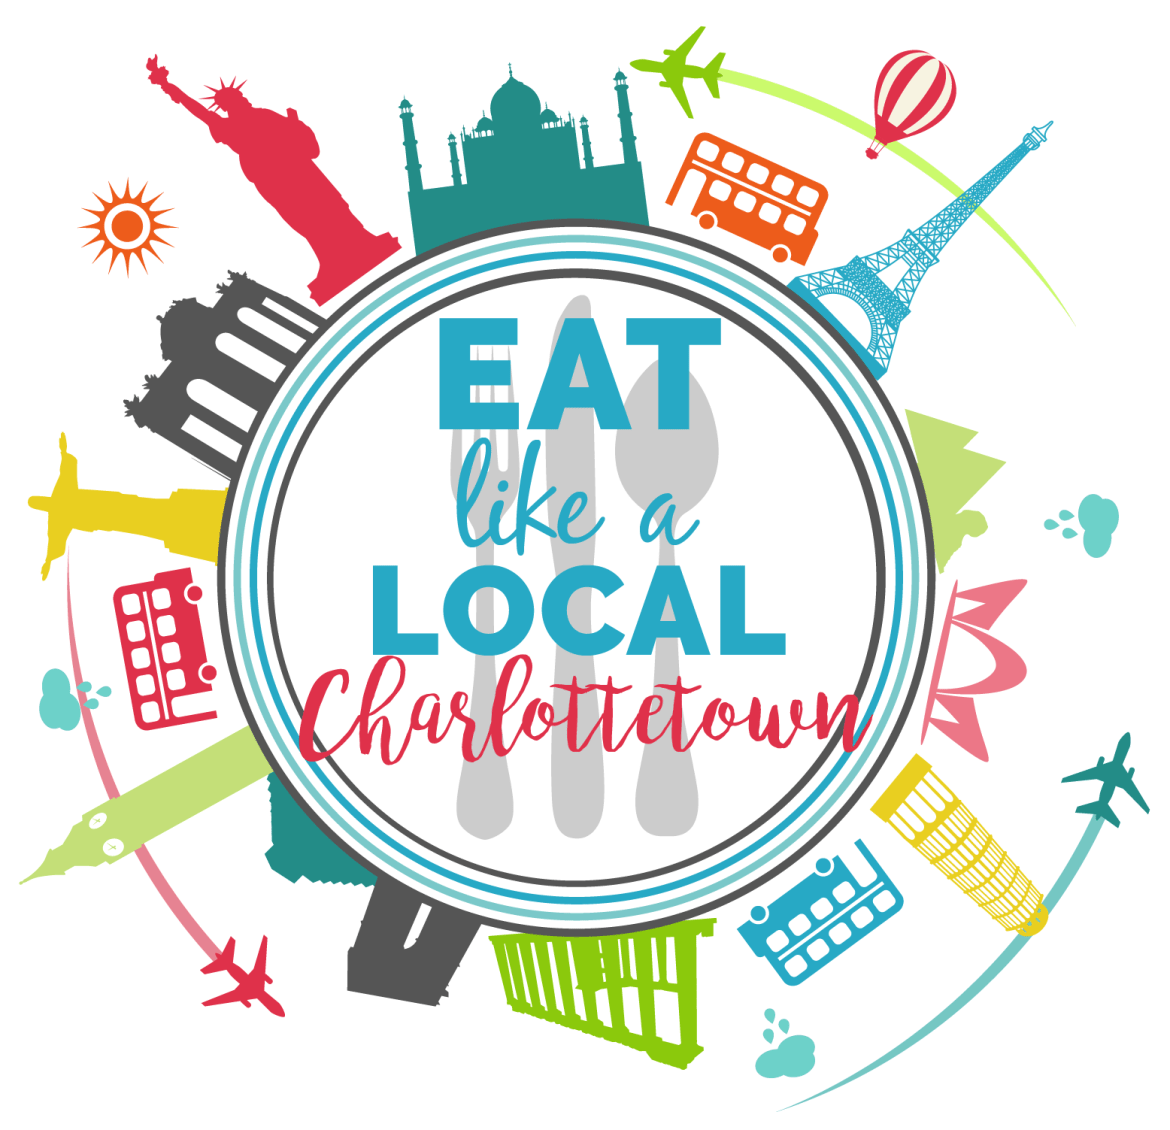 Eat Like a Local Charlottetown Prince Edward Island Canada